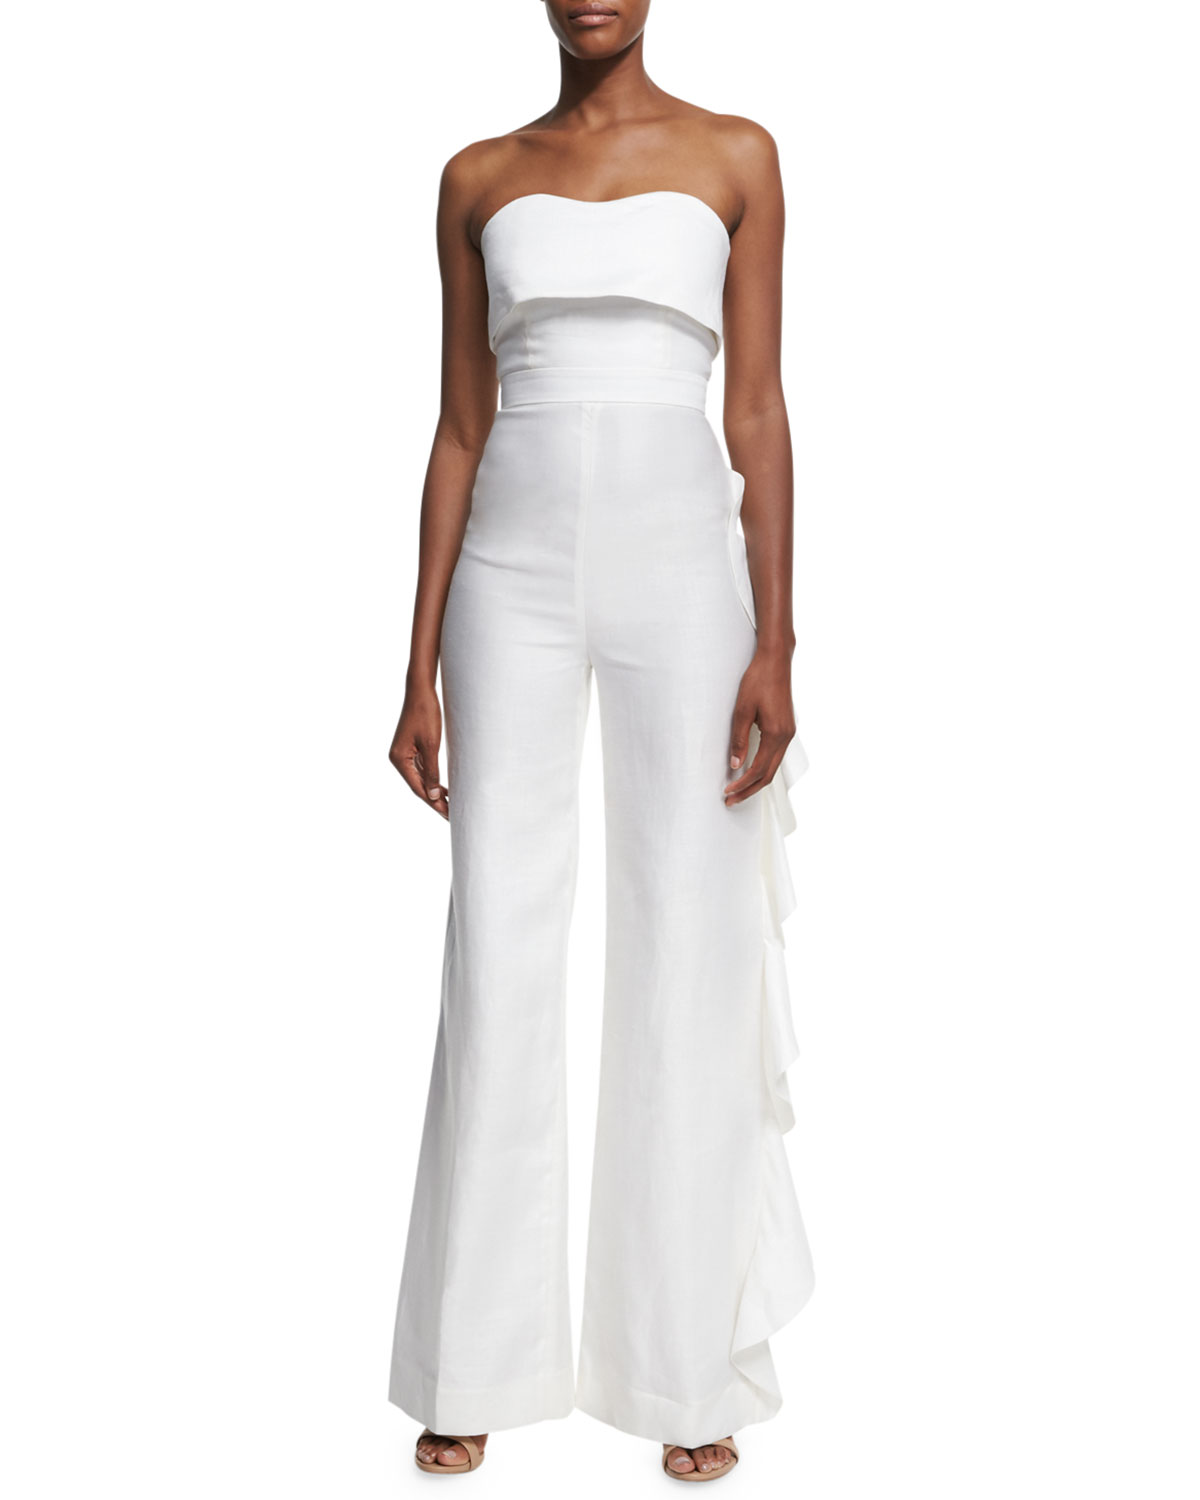 d49ff14b4bf0 Alexis Jara Strapless Overlay Jumpsuit